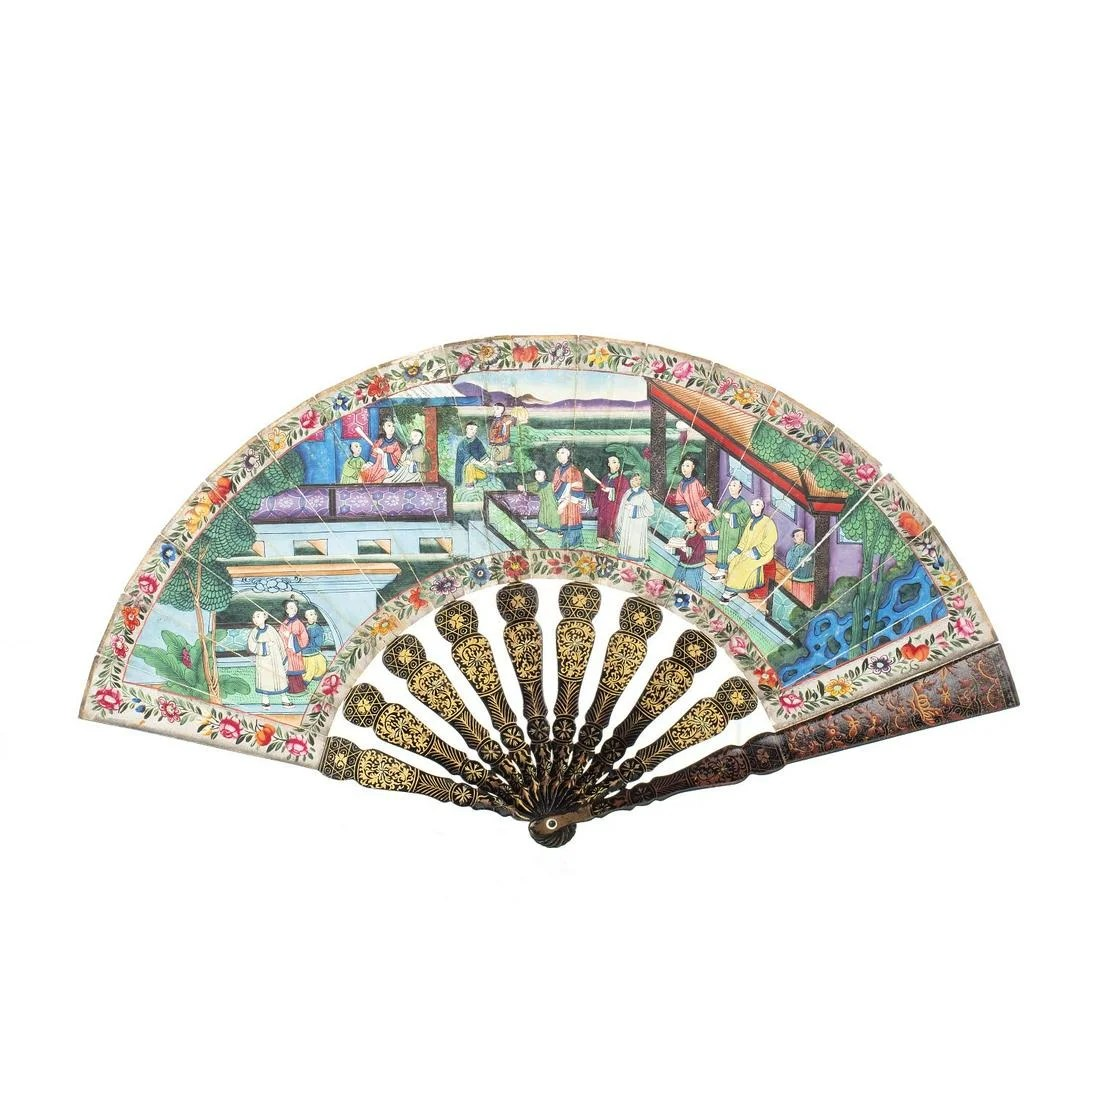 Chinese 'Mandarin' fan, 19th